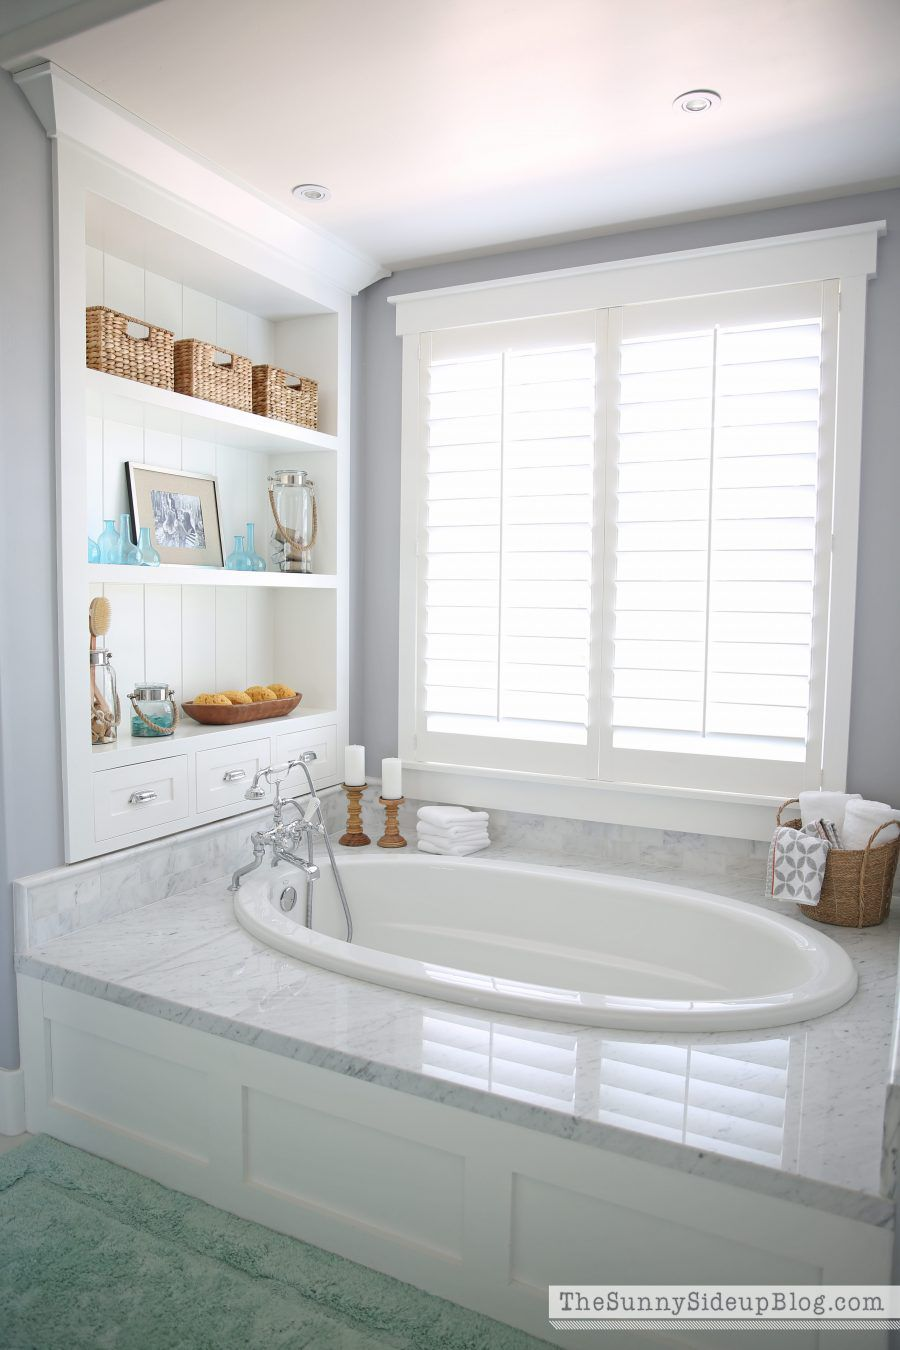 bathroom remodel ideas that pay off - Bathroom Remodel Cheap